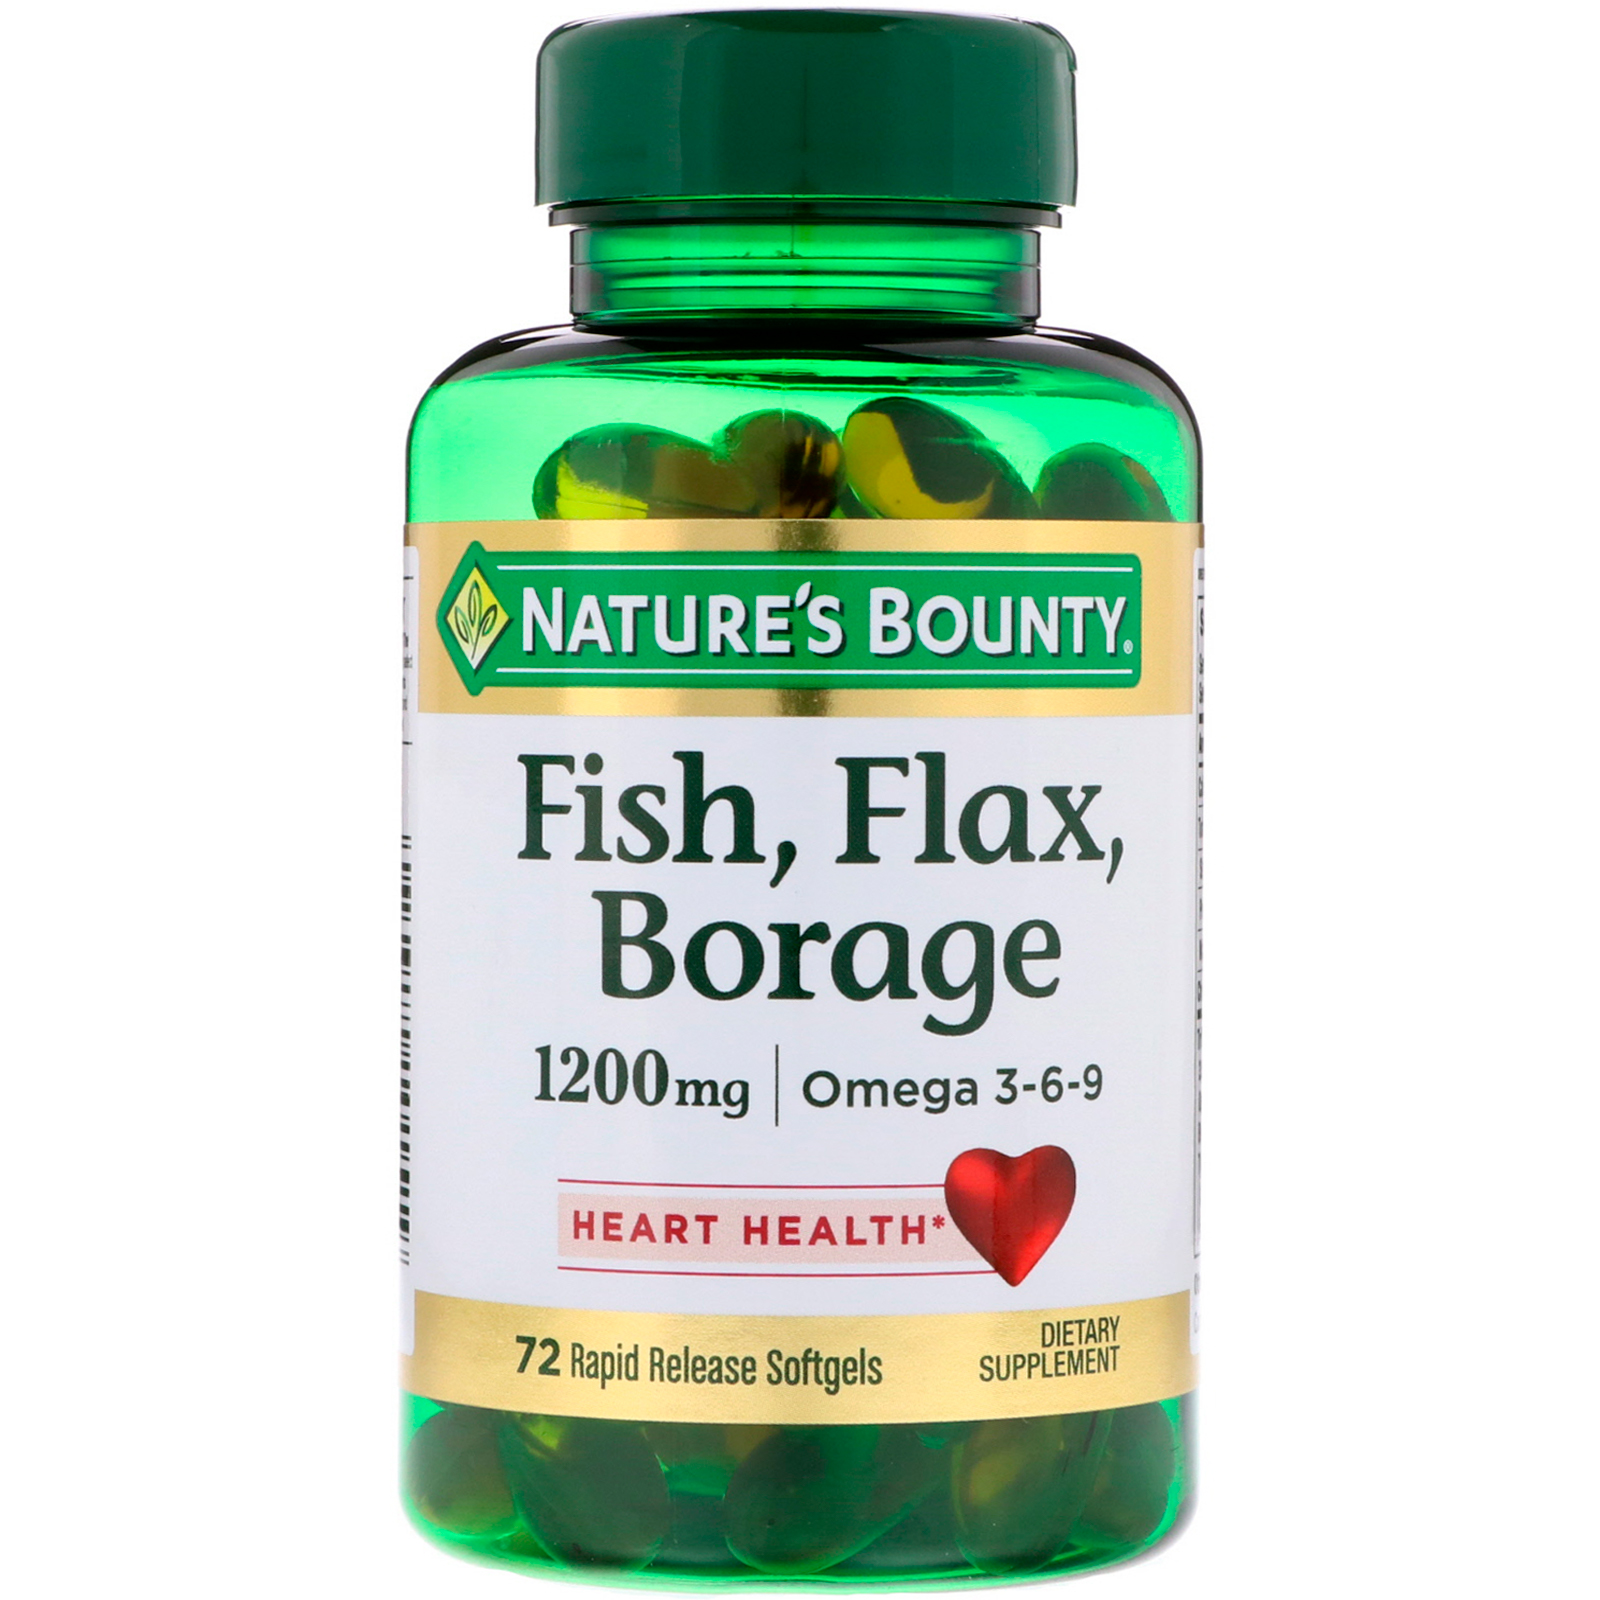 Natures Bounty Fish Flax Borage 1200 Mg 72 Rapid Release